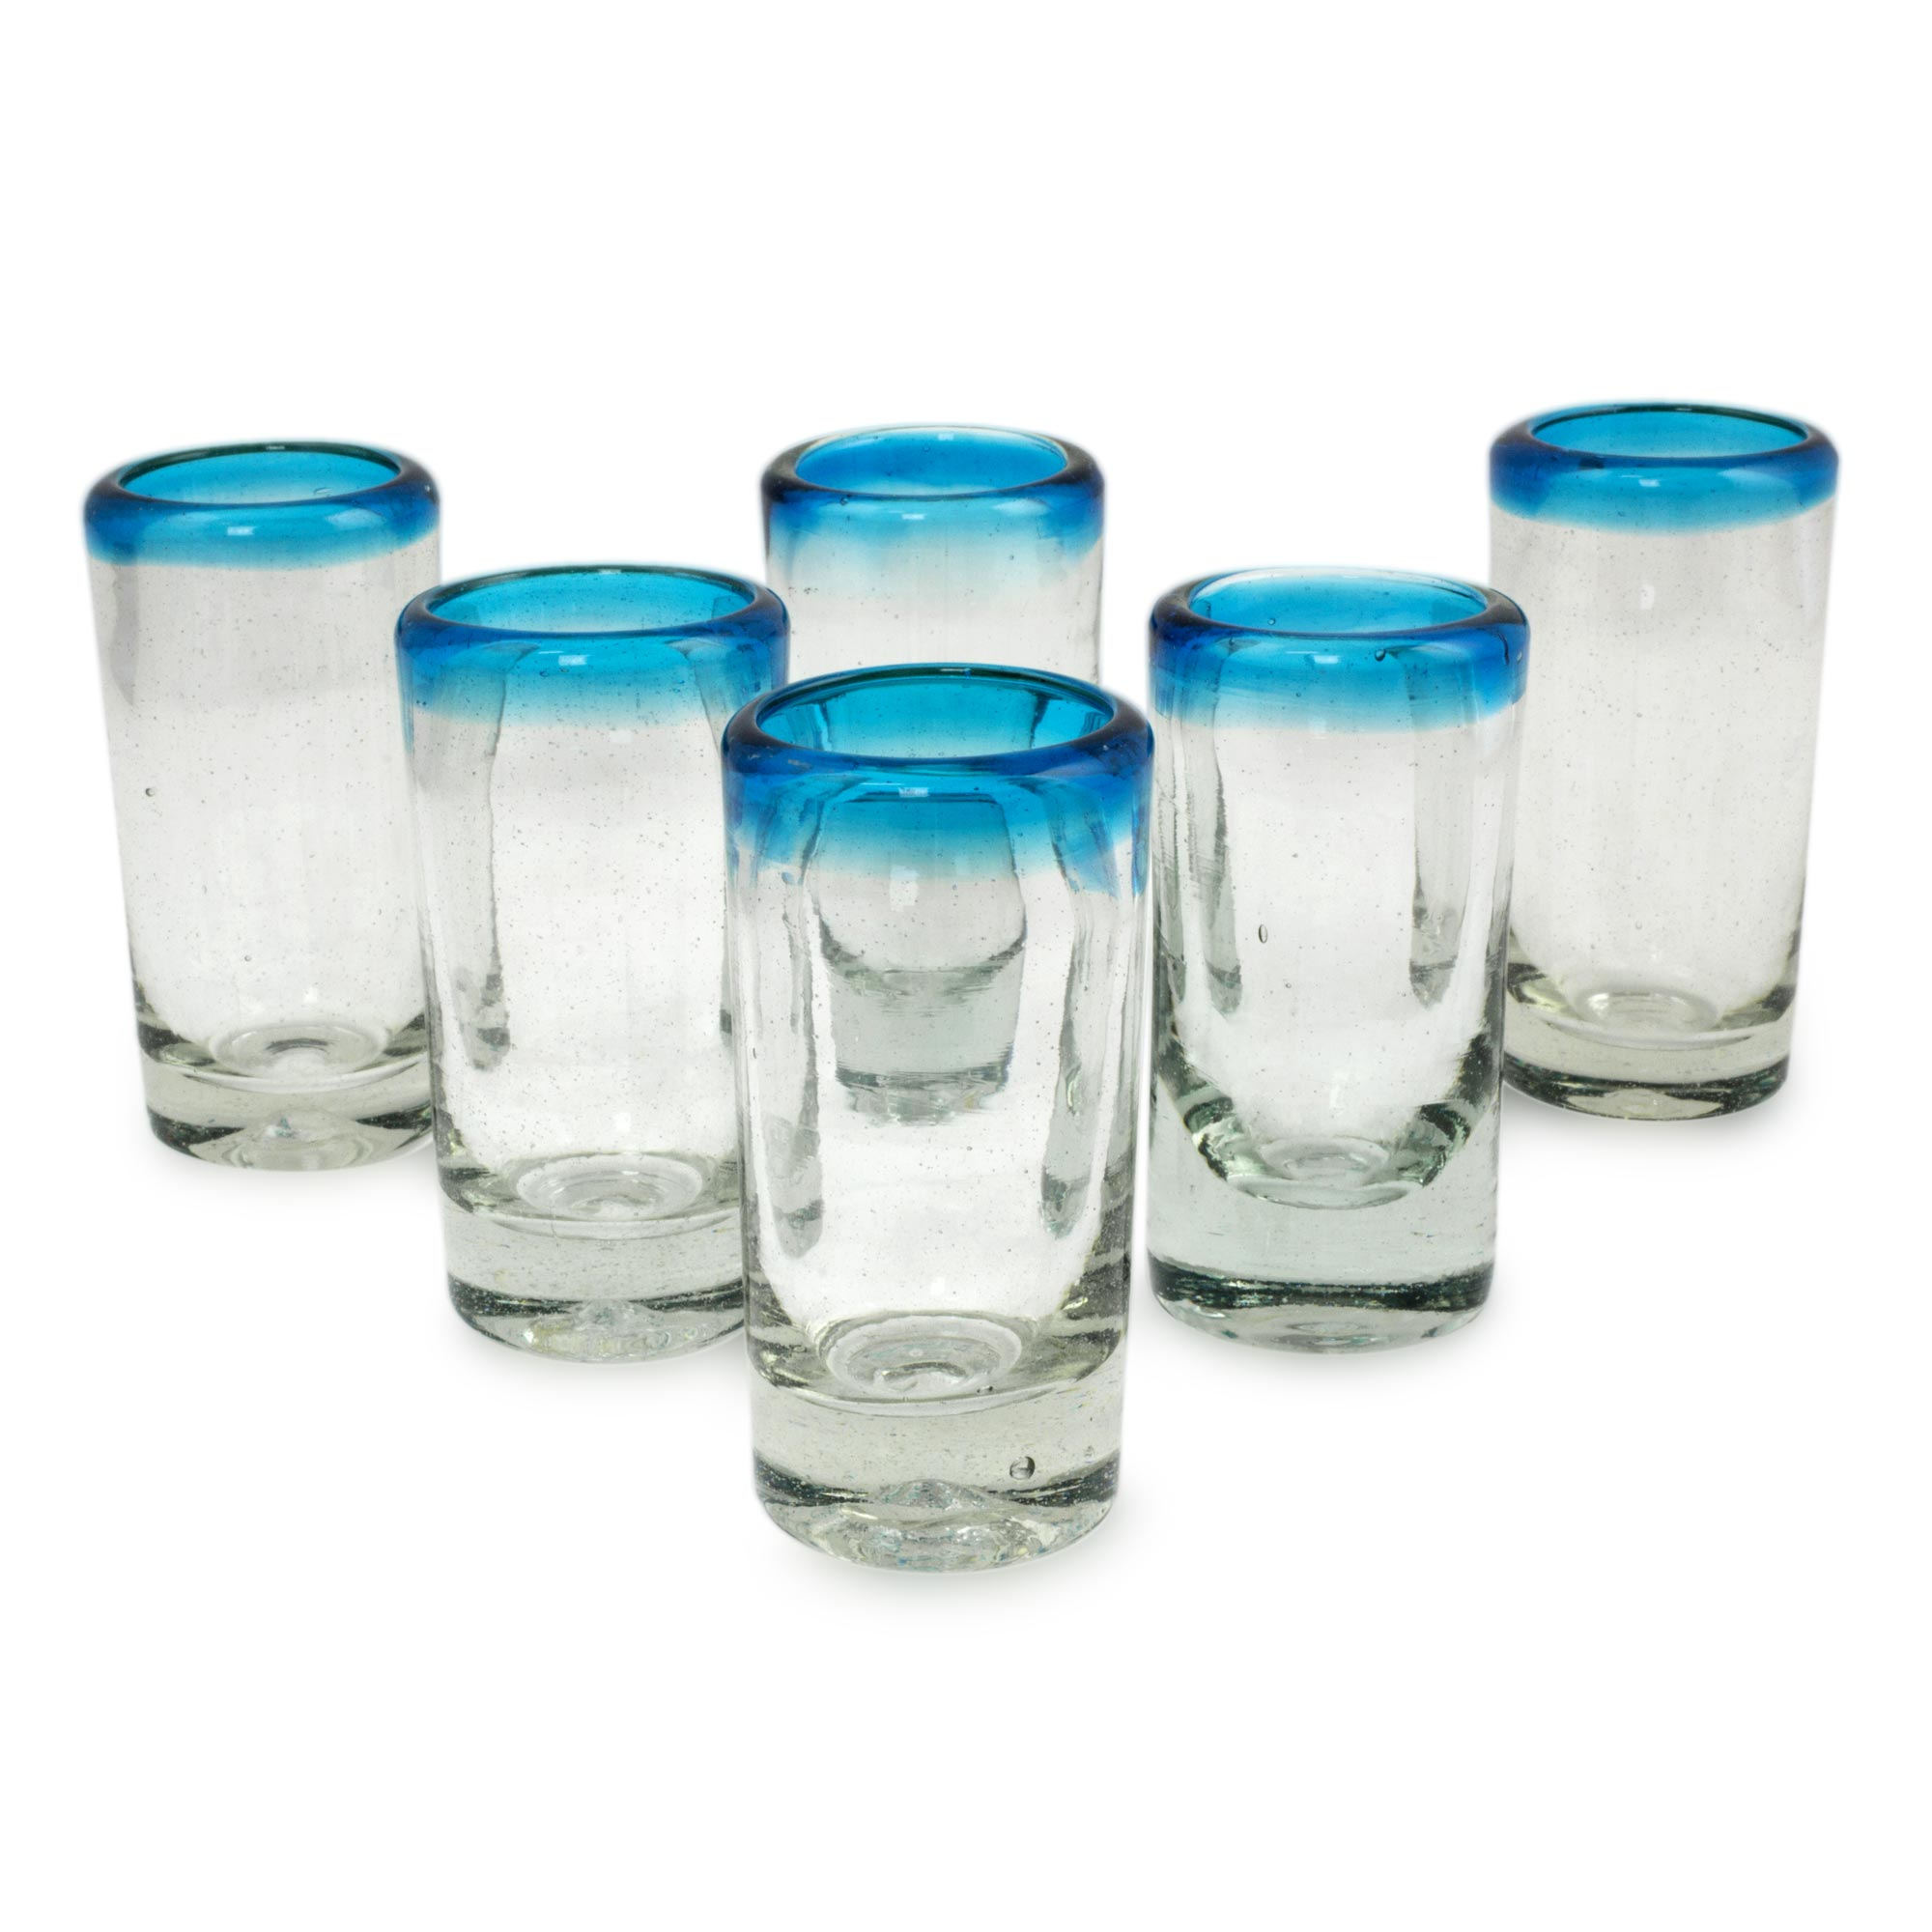 decorative glasses blown tequila overstock shipping product set shot glass home decor energy today free of elegant mexico garden